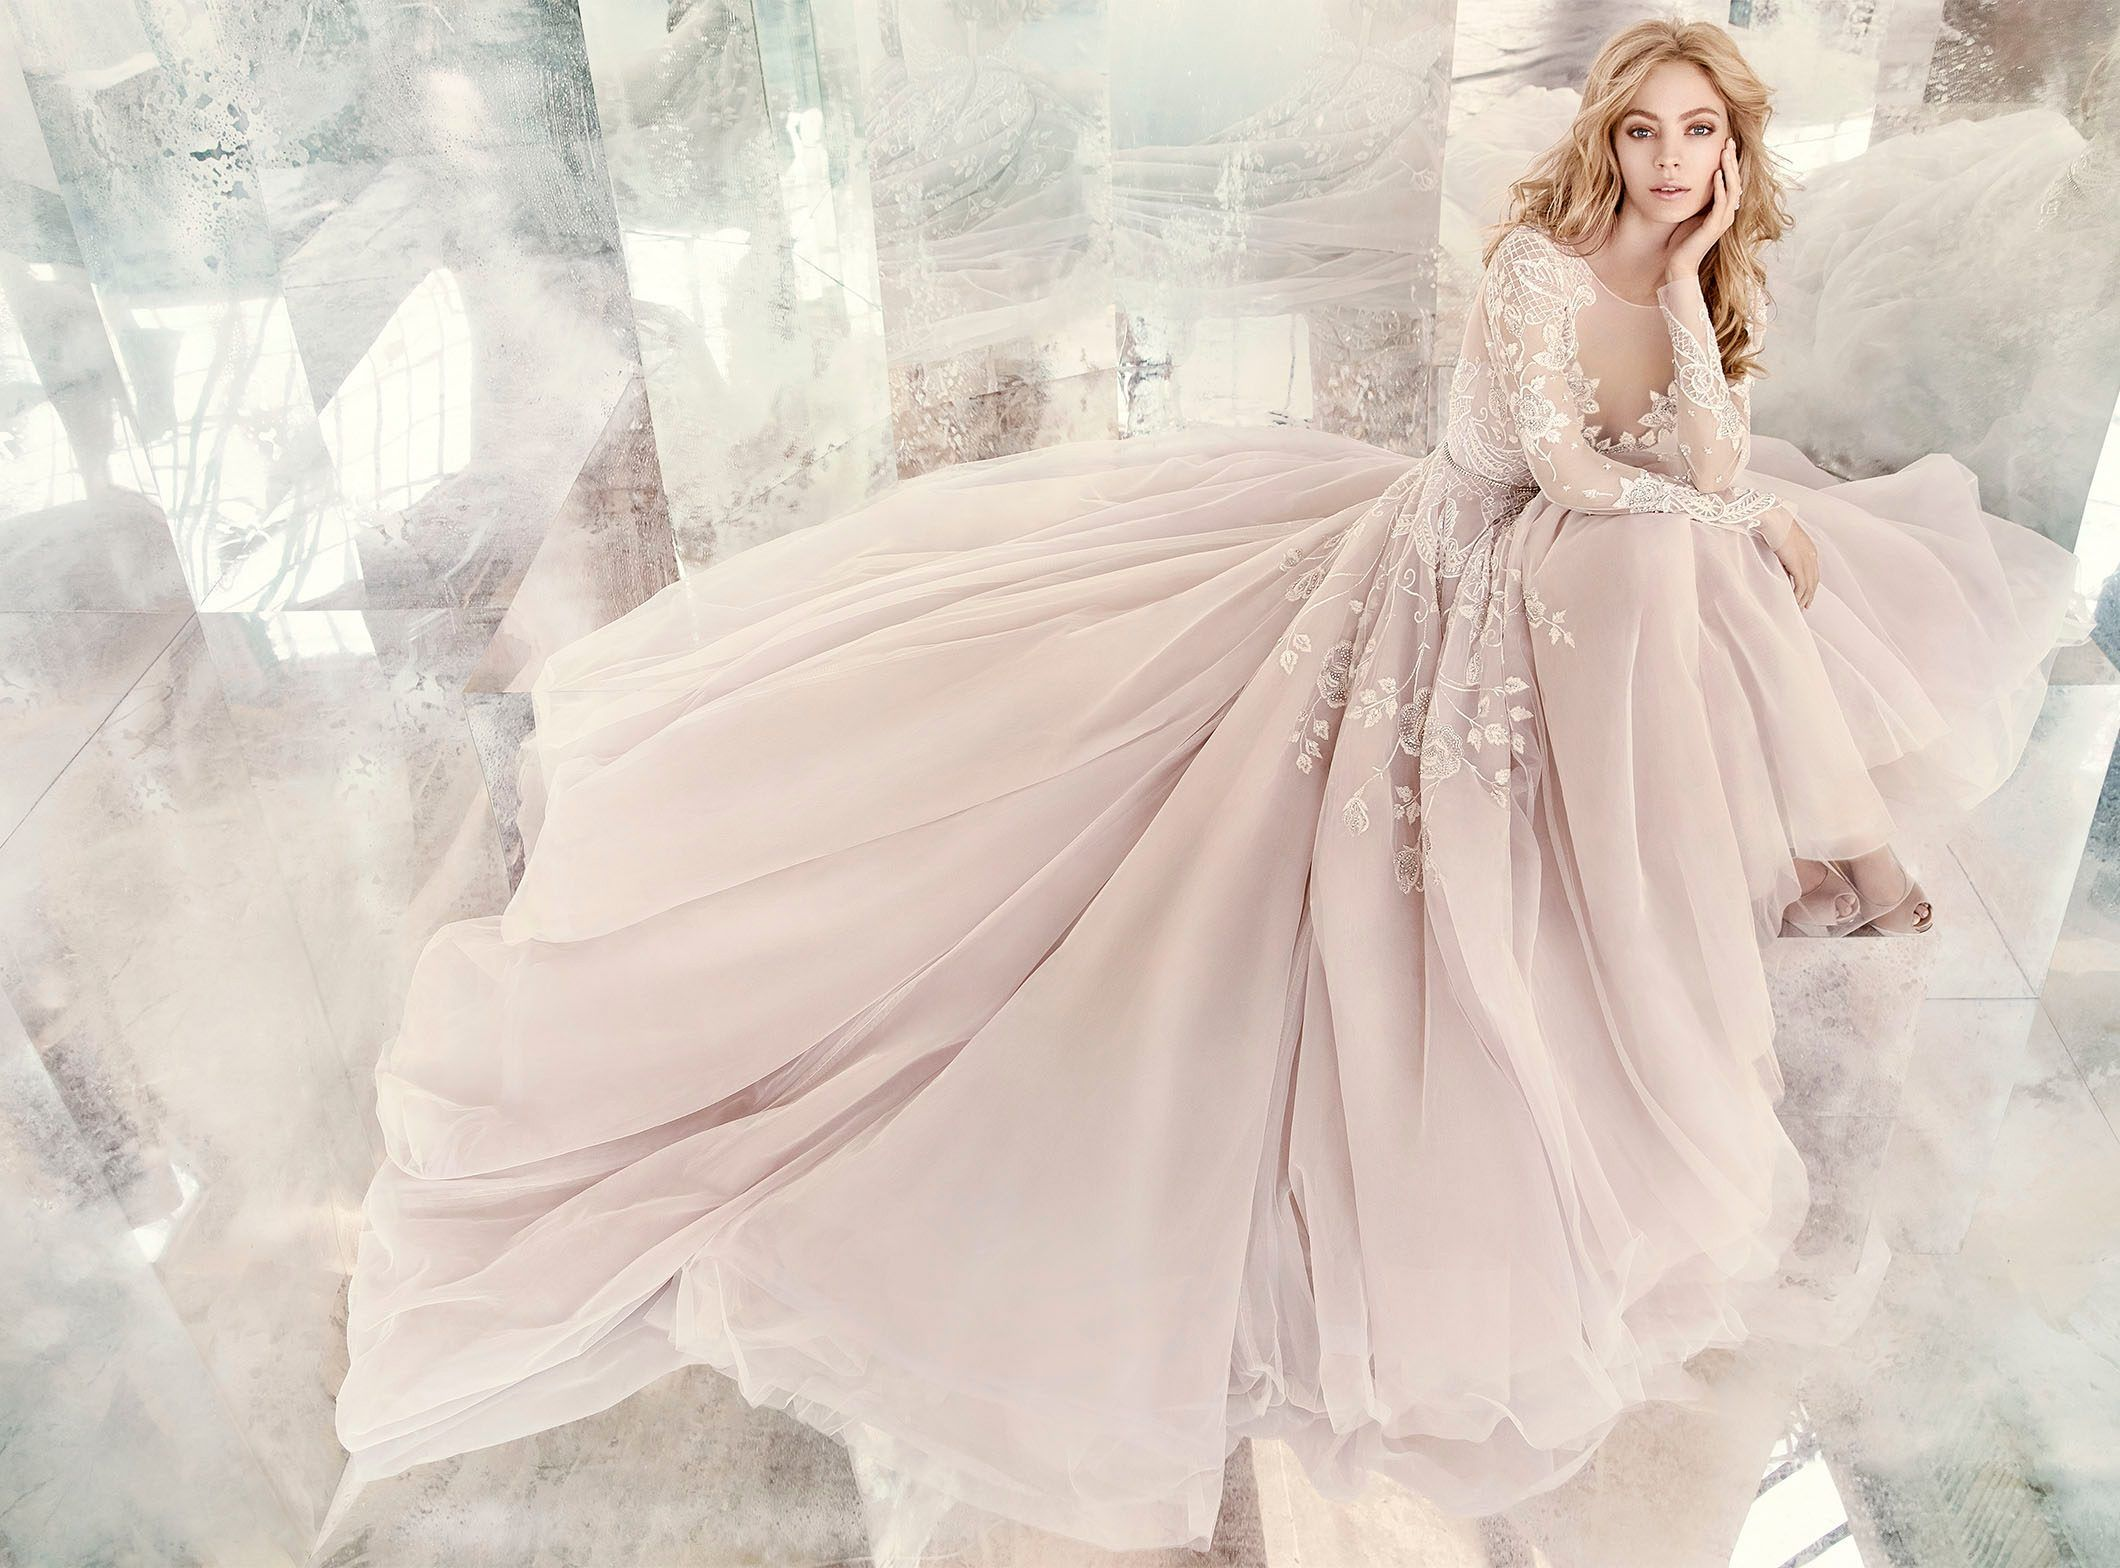 Wedding dress short in front with long train  Style  Hayley Ad Shot  wedding  Pinterest  Hayley paige